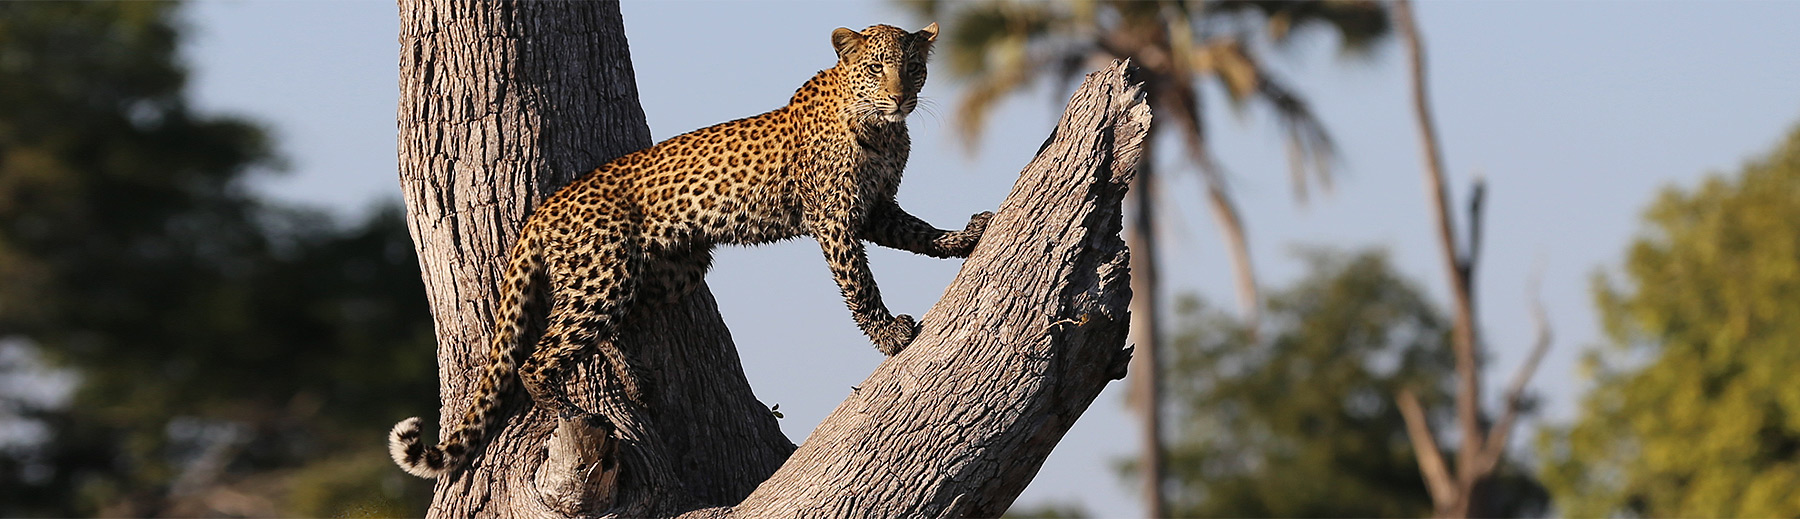 A leopard with a wet underbody looking out into the distance from a dead tree trunk.